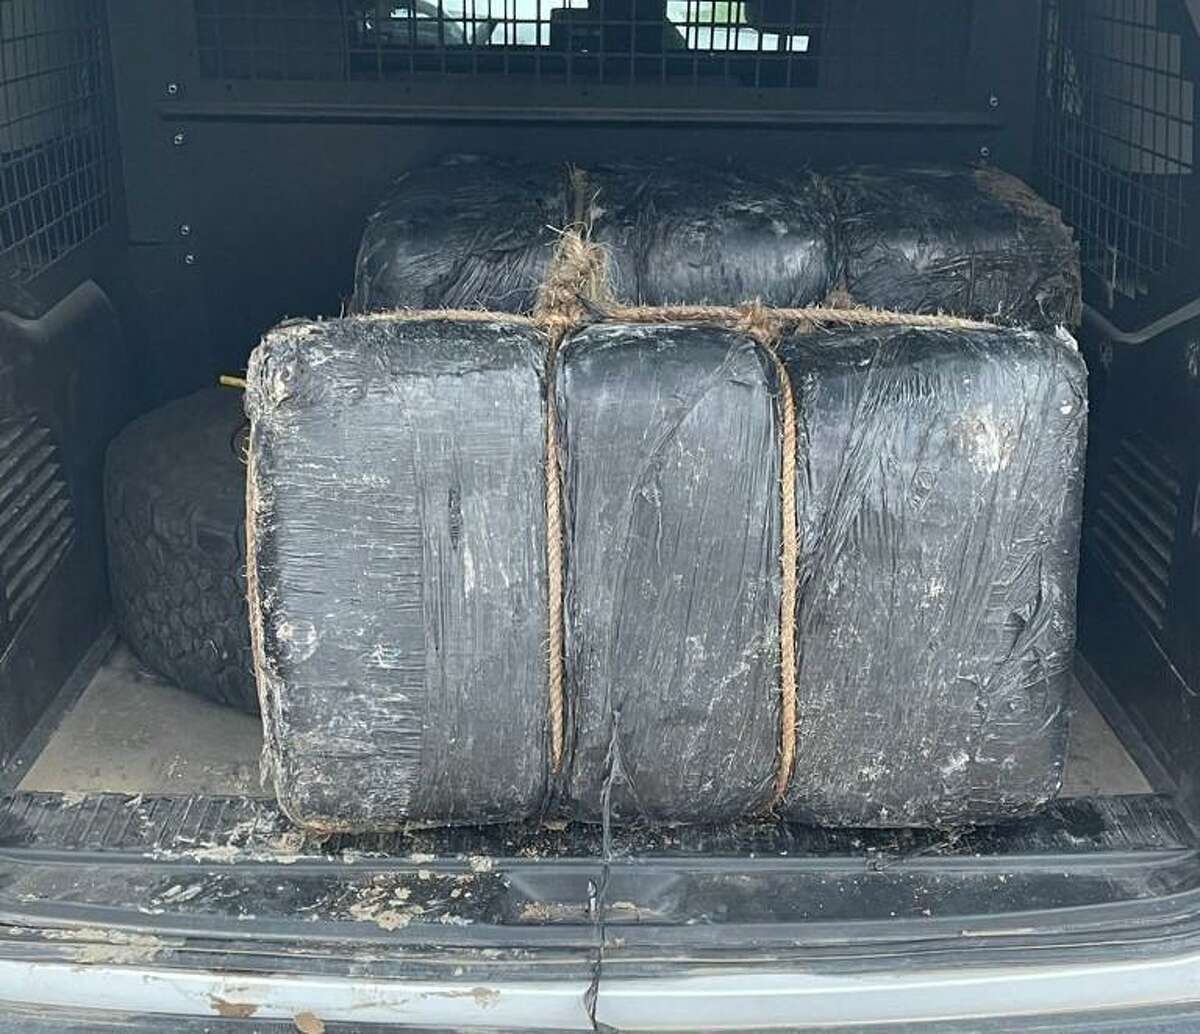 U.S. Border Patrol agents seized these two bundles of marijuana weighing 137 pounds. The contraband had an estimated street value of $110,132.